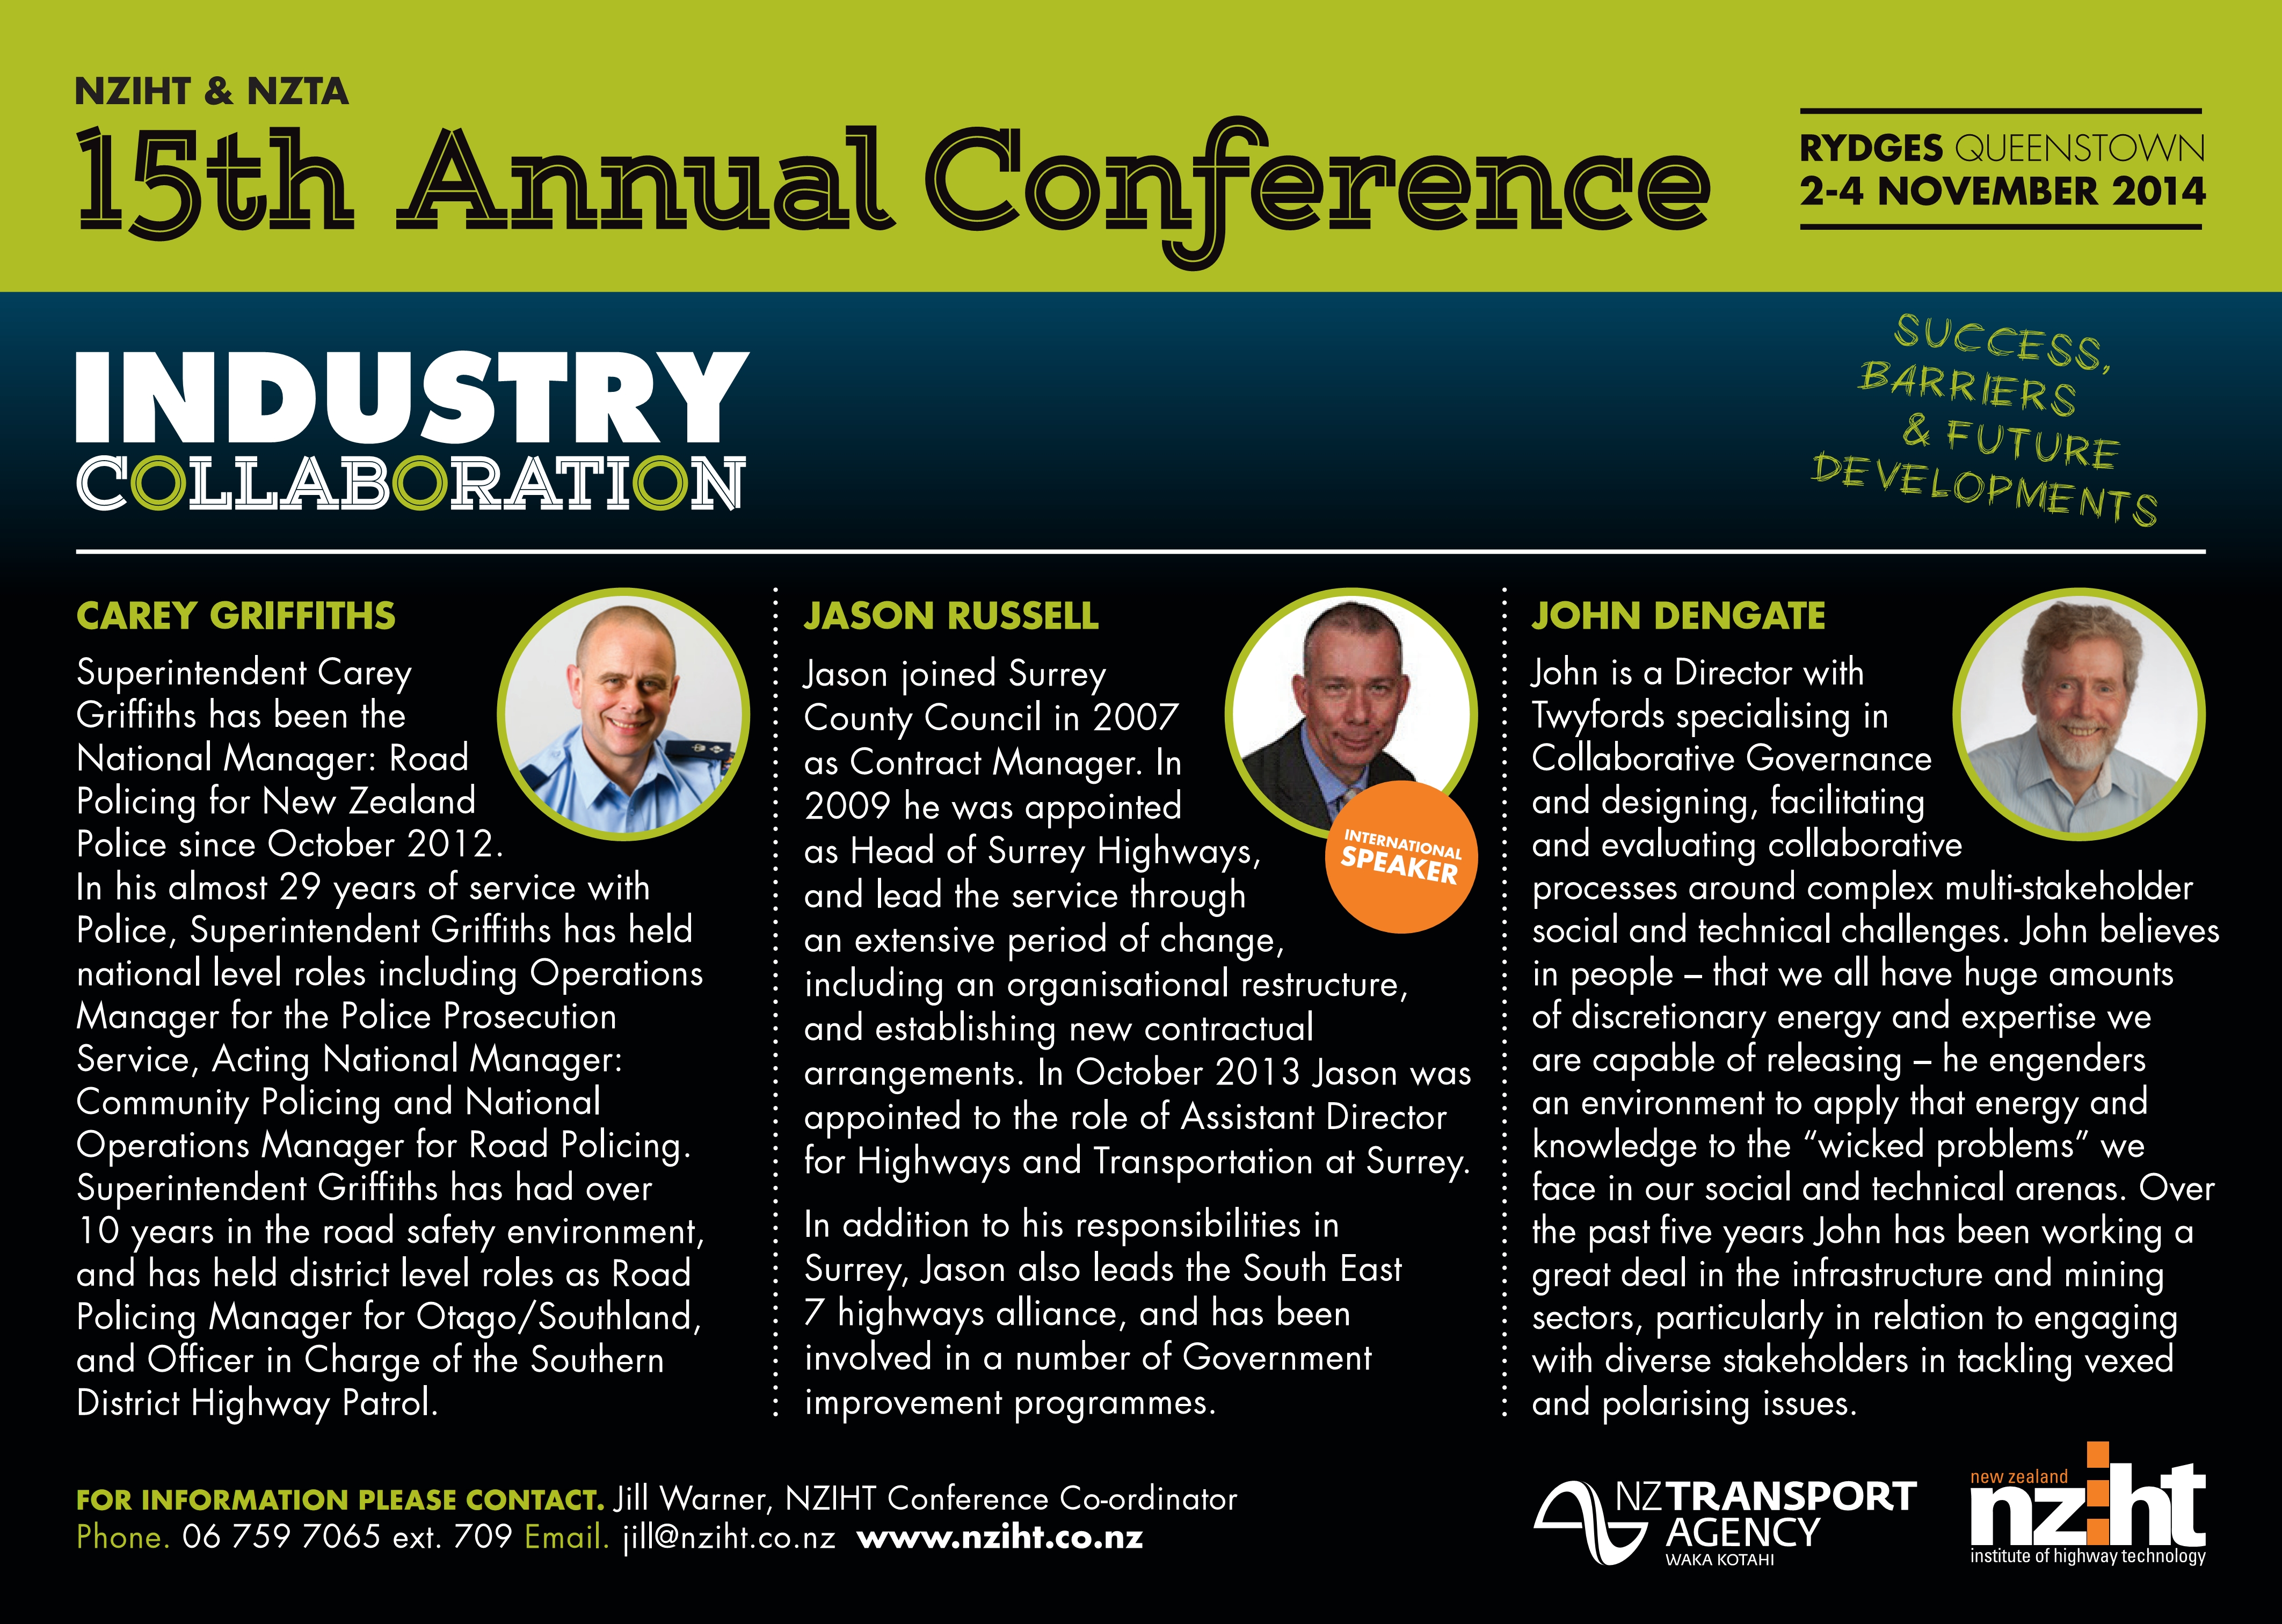 2nd - 4th November 2014, Rydges Queenstown